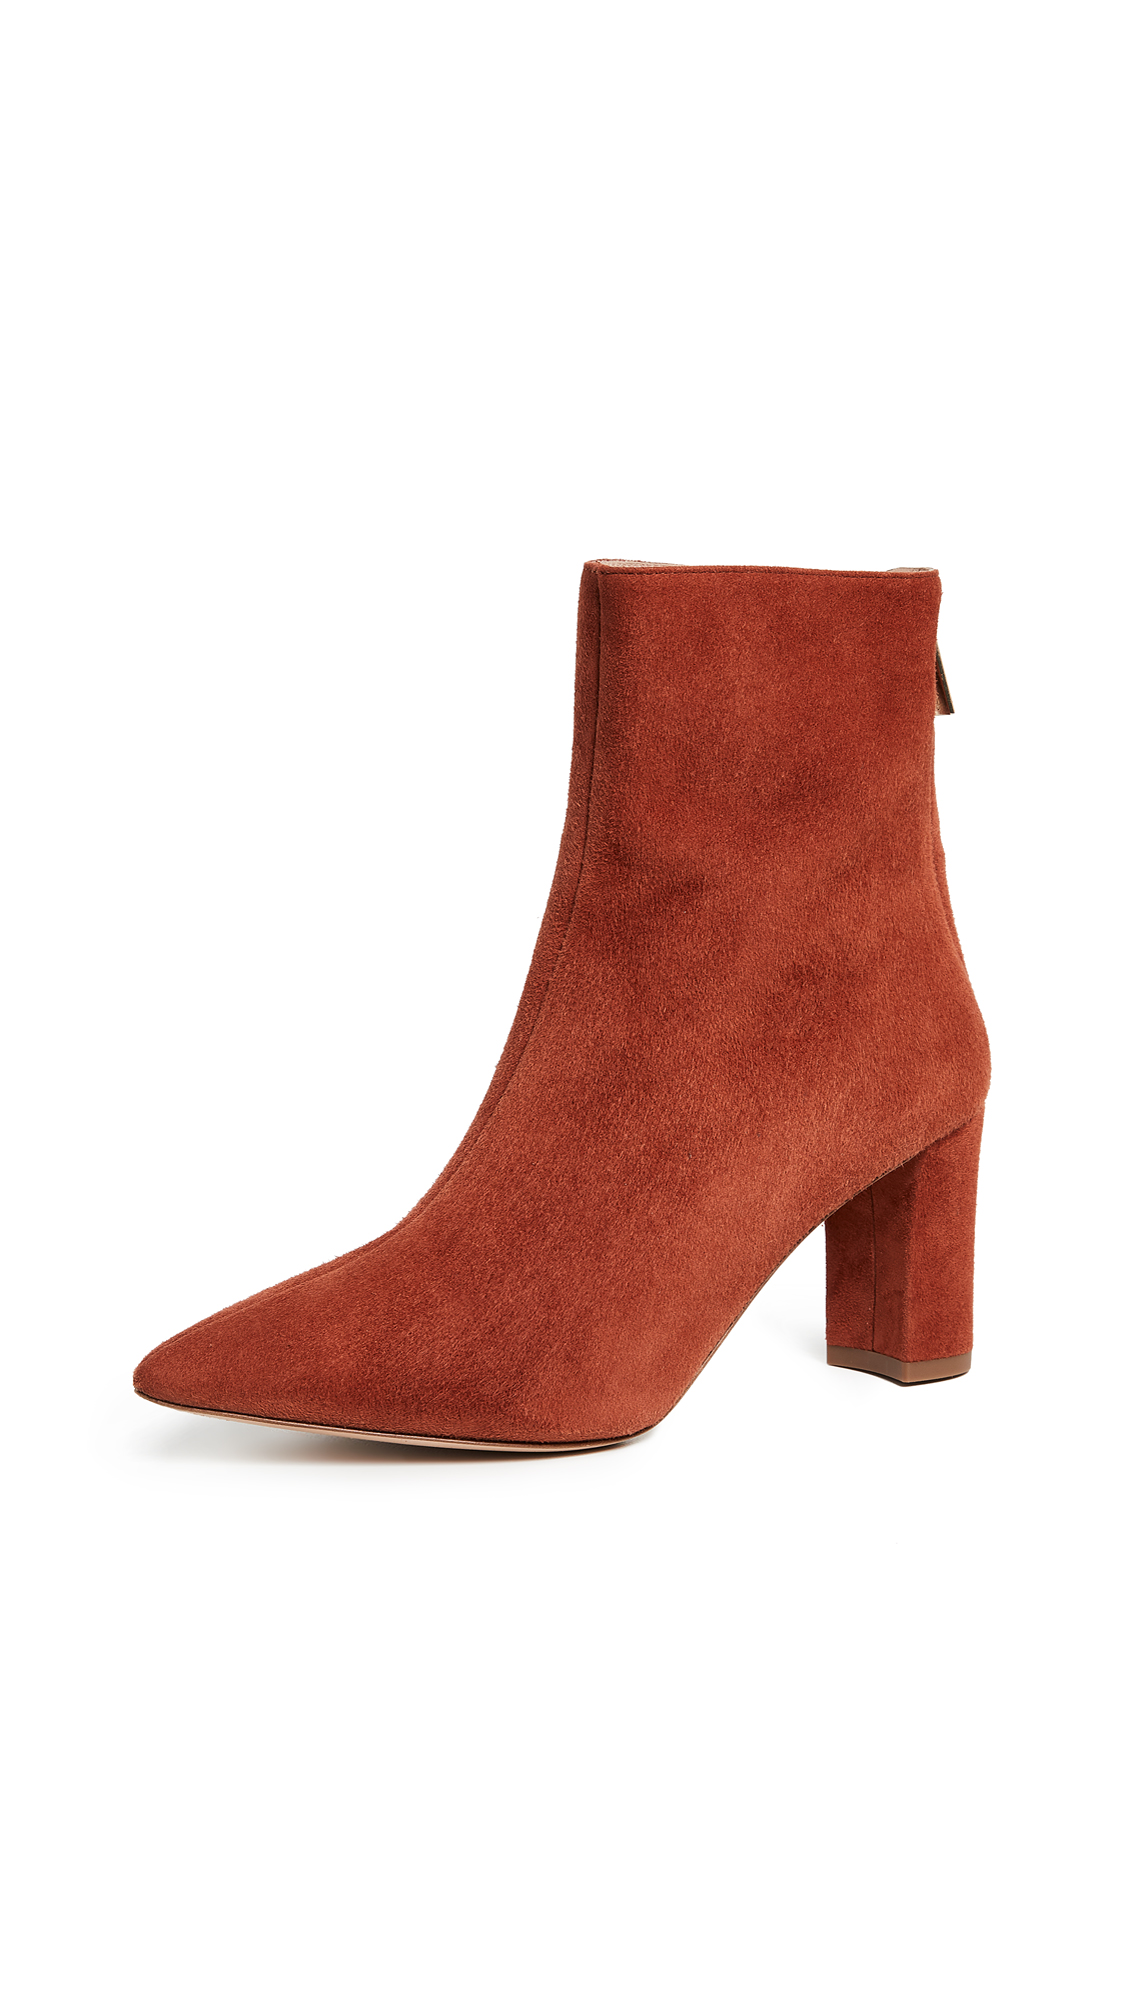 Club Monaco Aaylina Booties - Sable